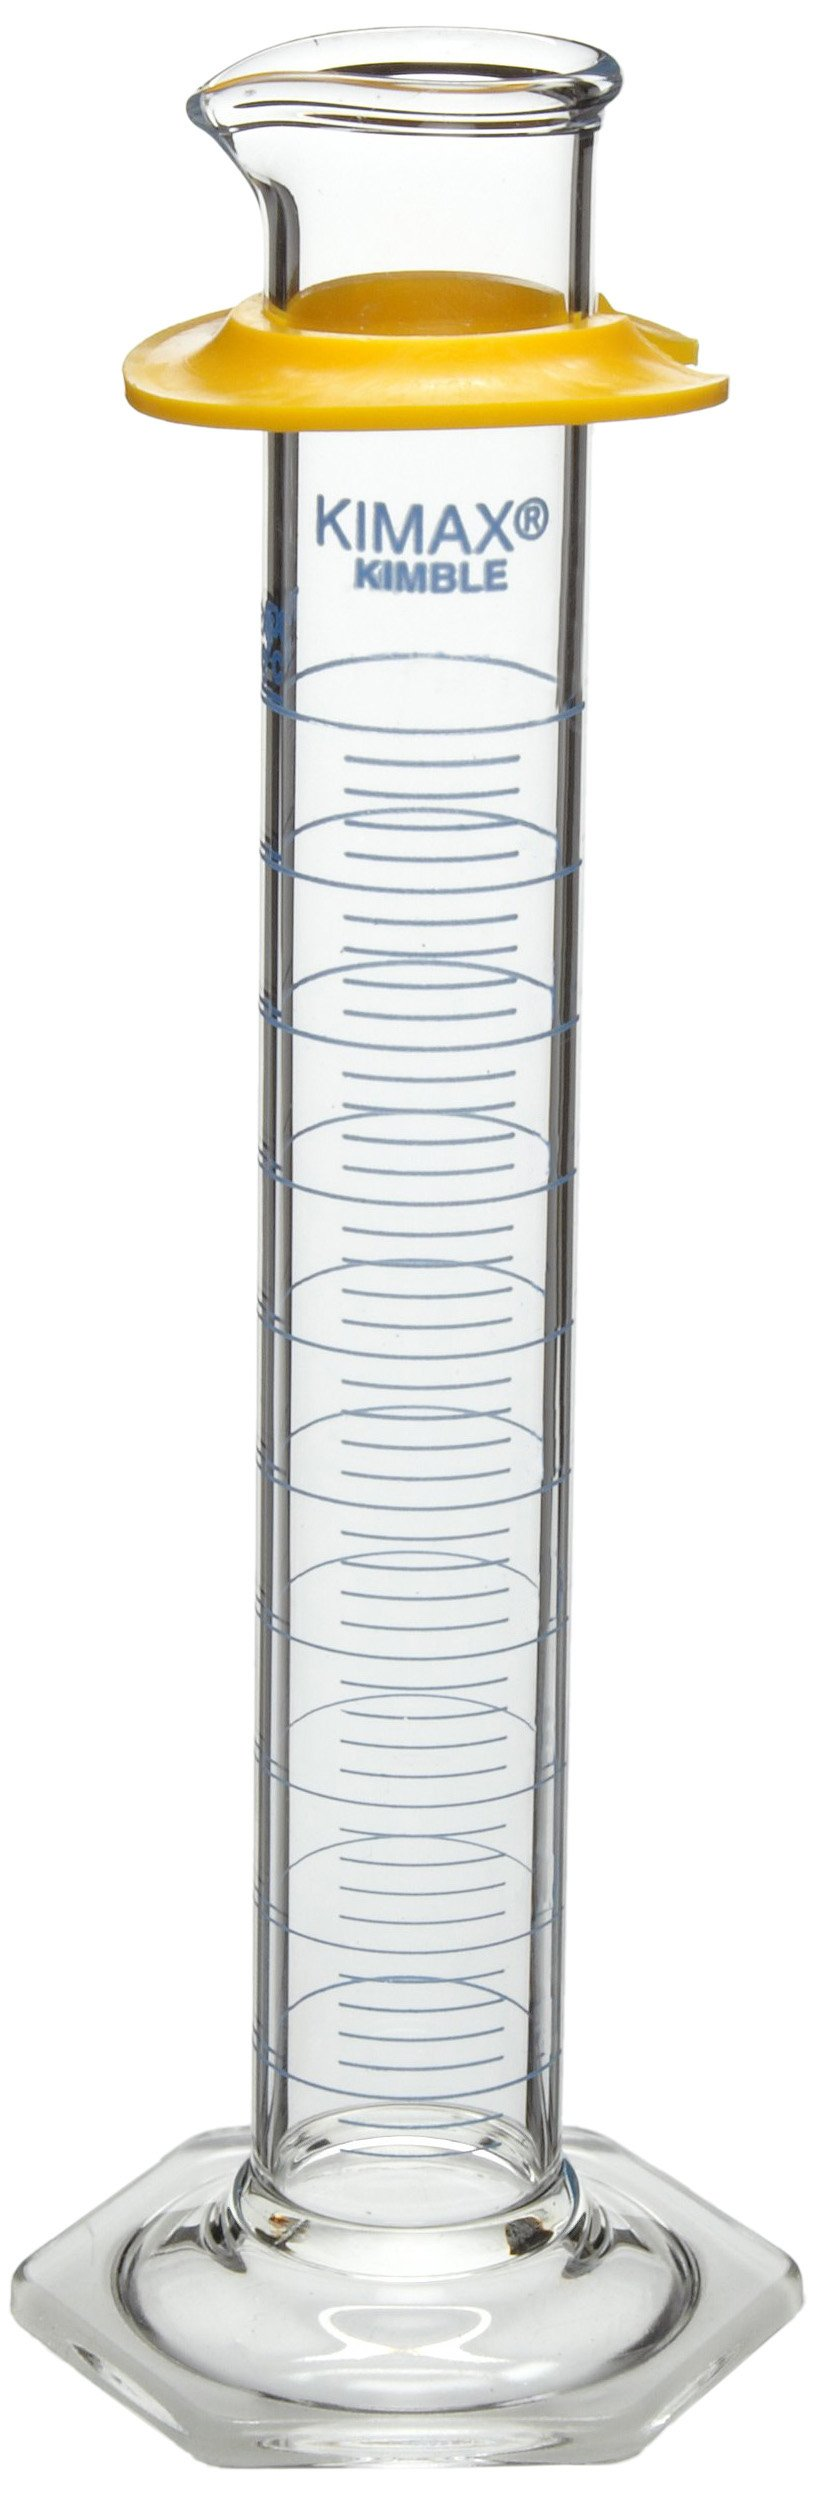 Kimax 20025-100 Glass Class B Single Blue Metric Scale Graduated Cylinder with Bumper, 100mL Capacity, 5 - 100mL Graduation Interval (Case of 24)